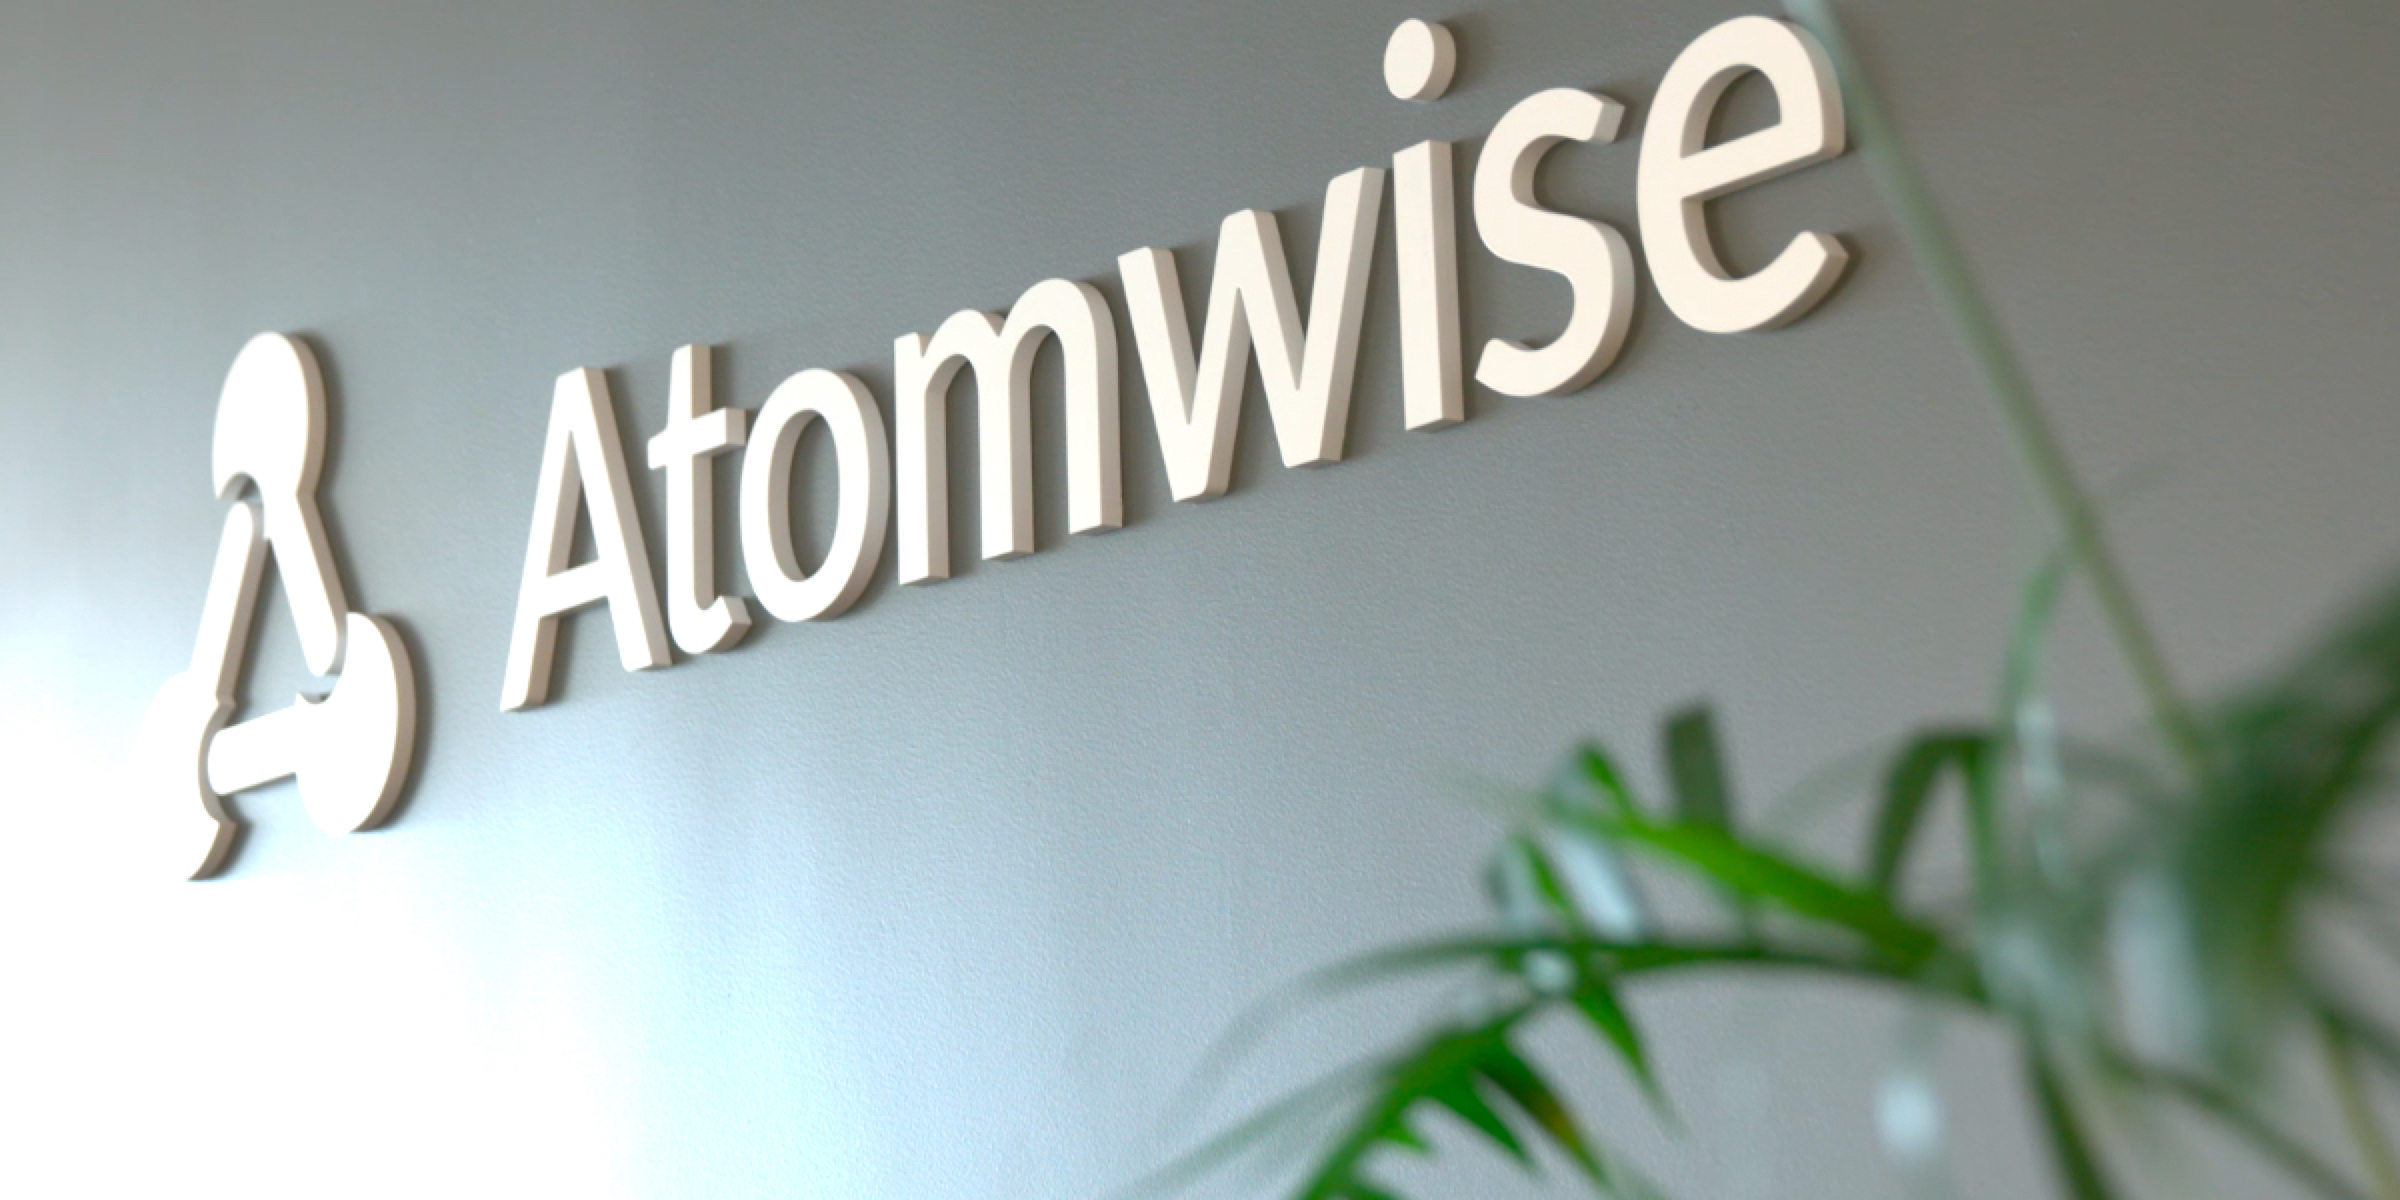 Atomwise sign in office